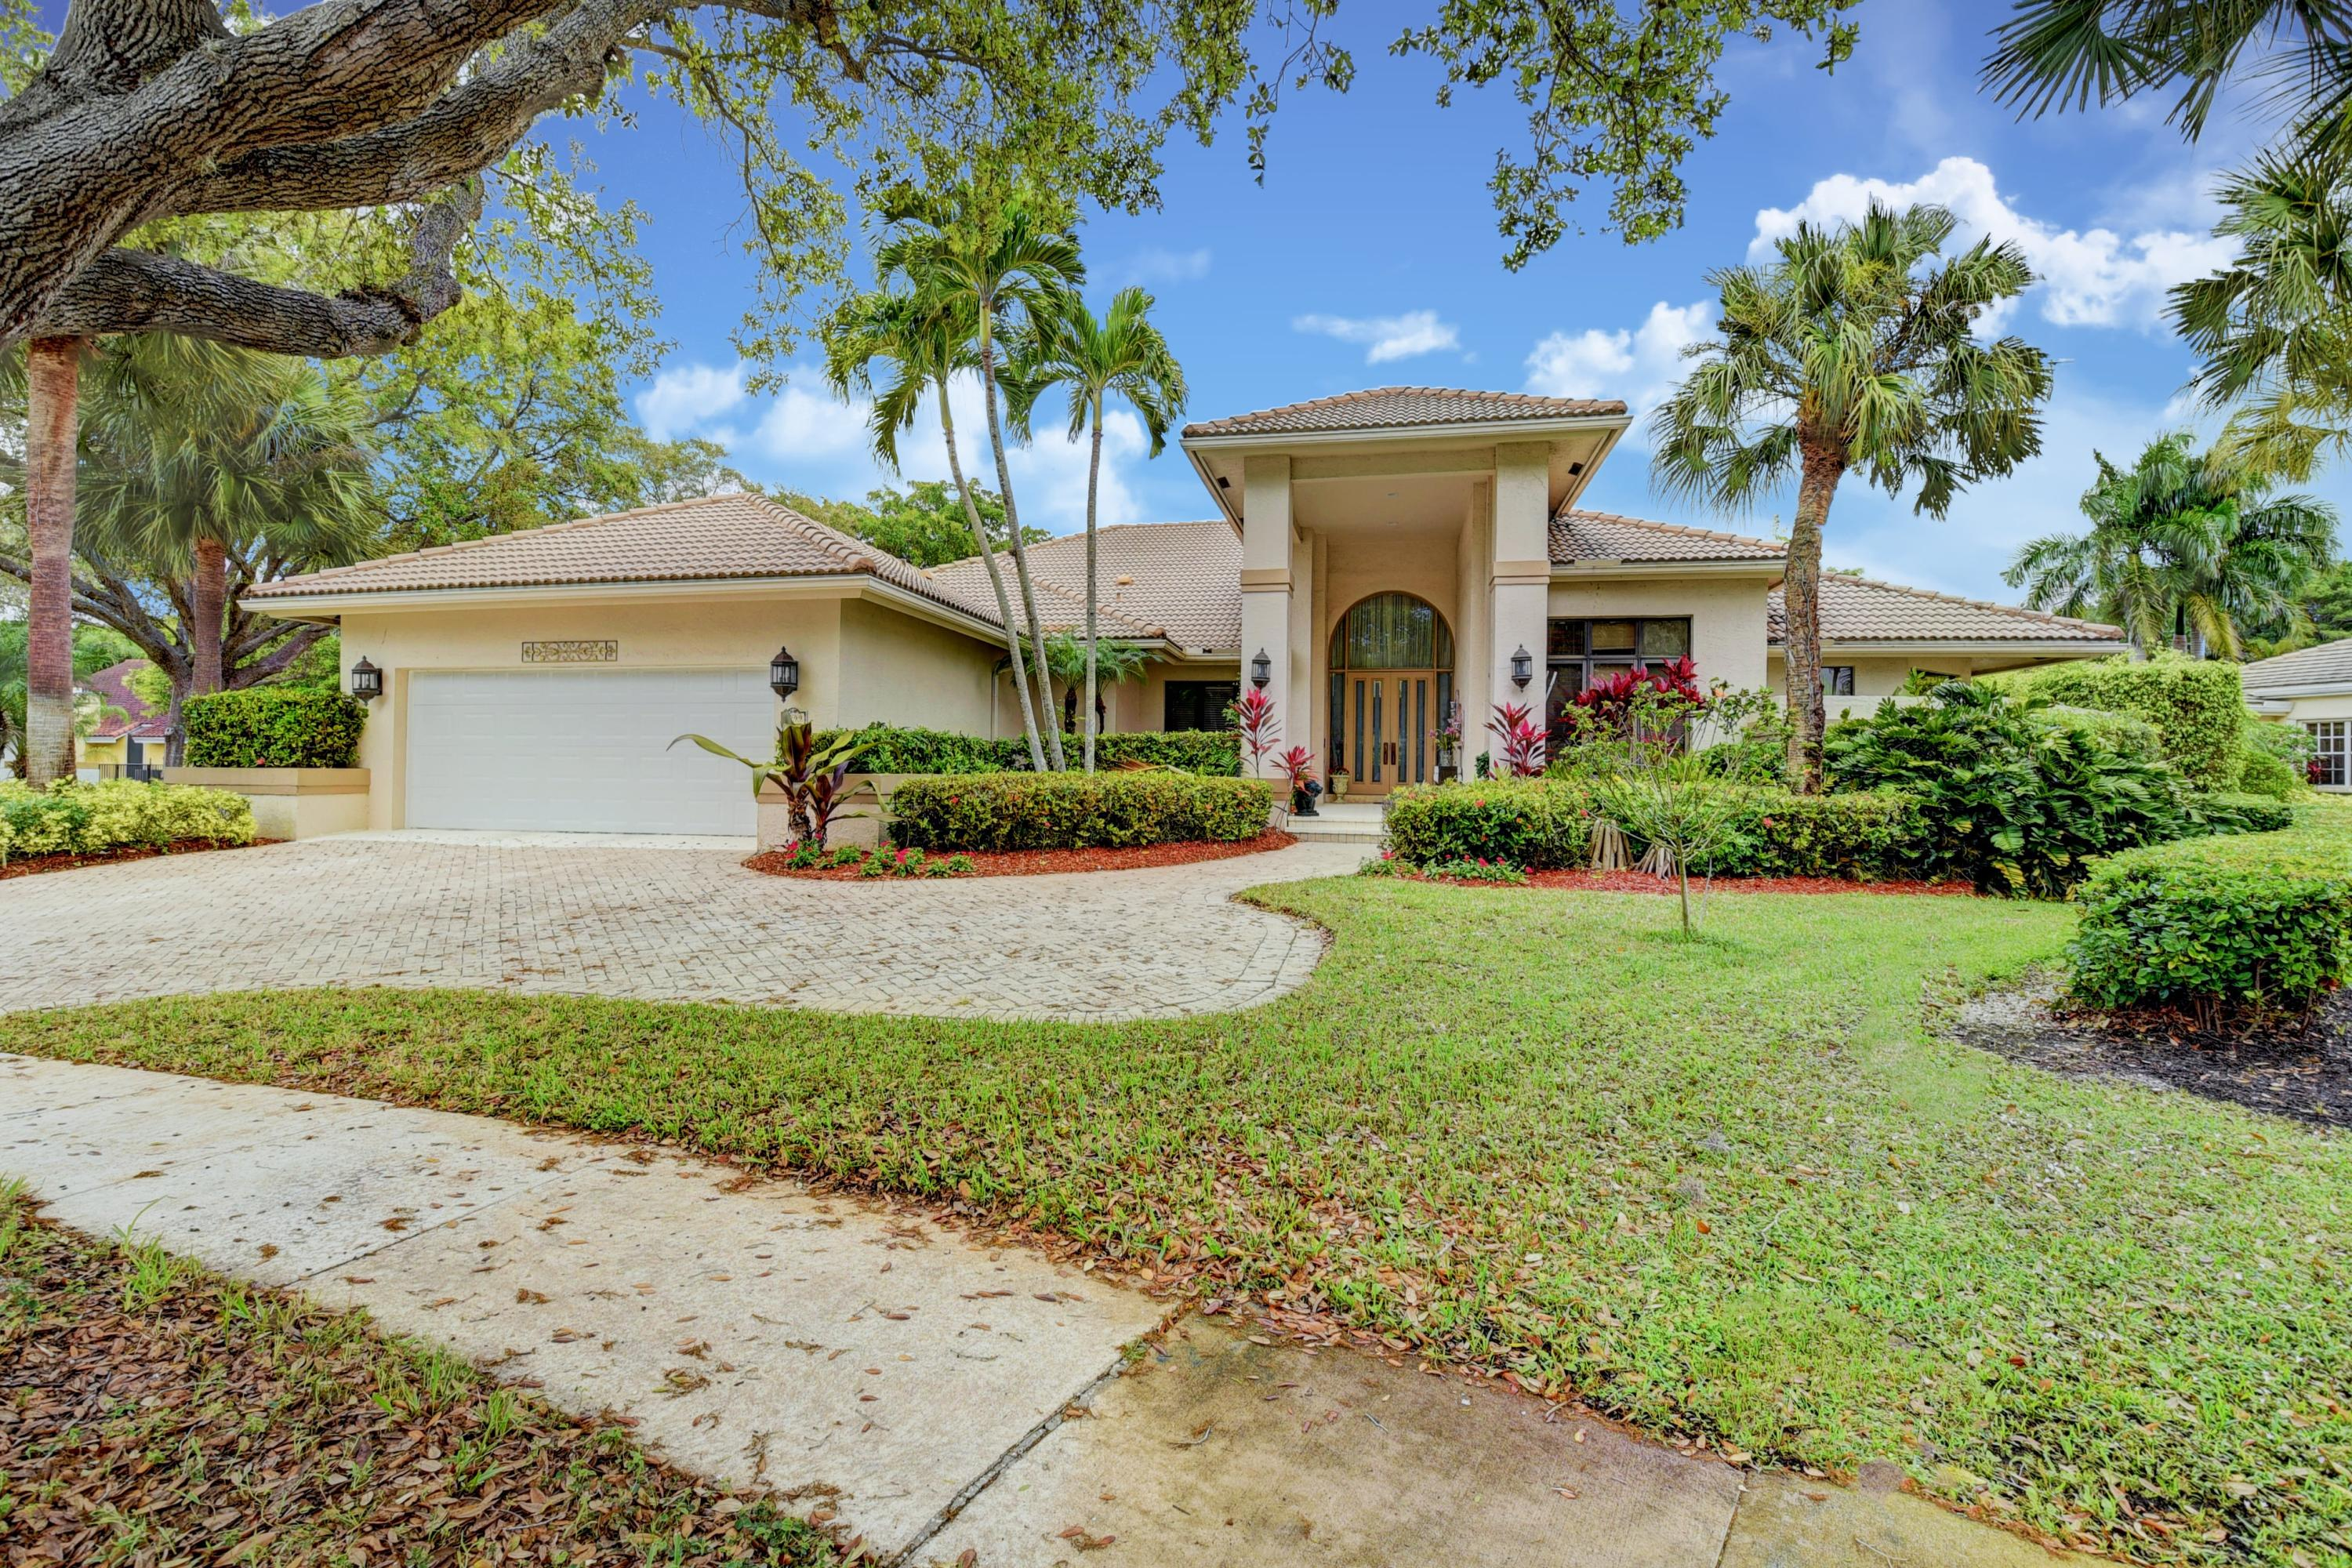 Details for 2299 55th Street Nw, Boca Raton, FL 33496